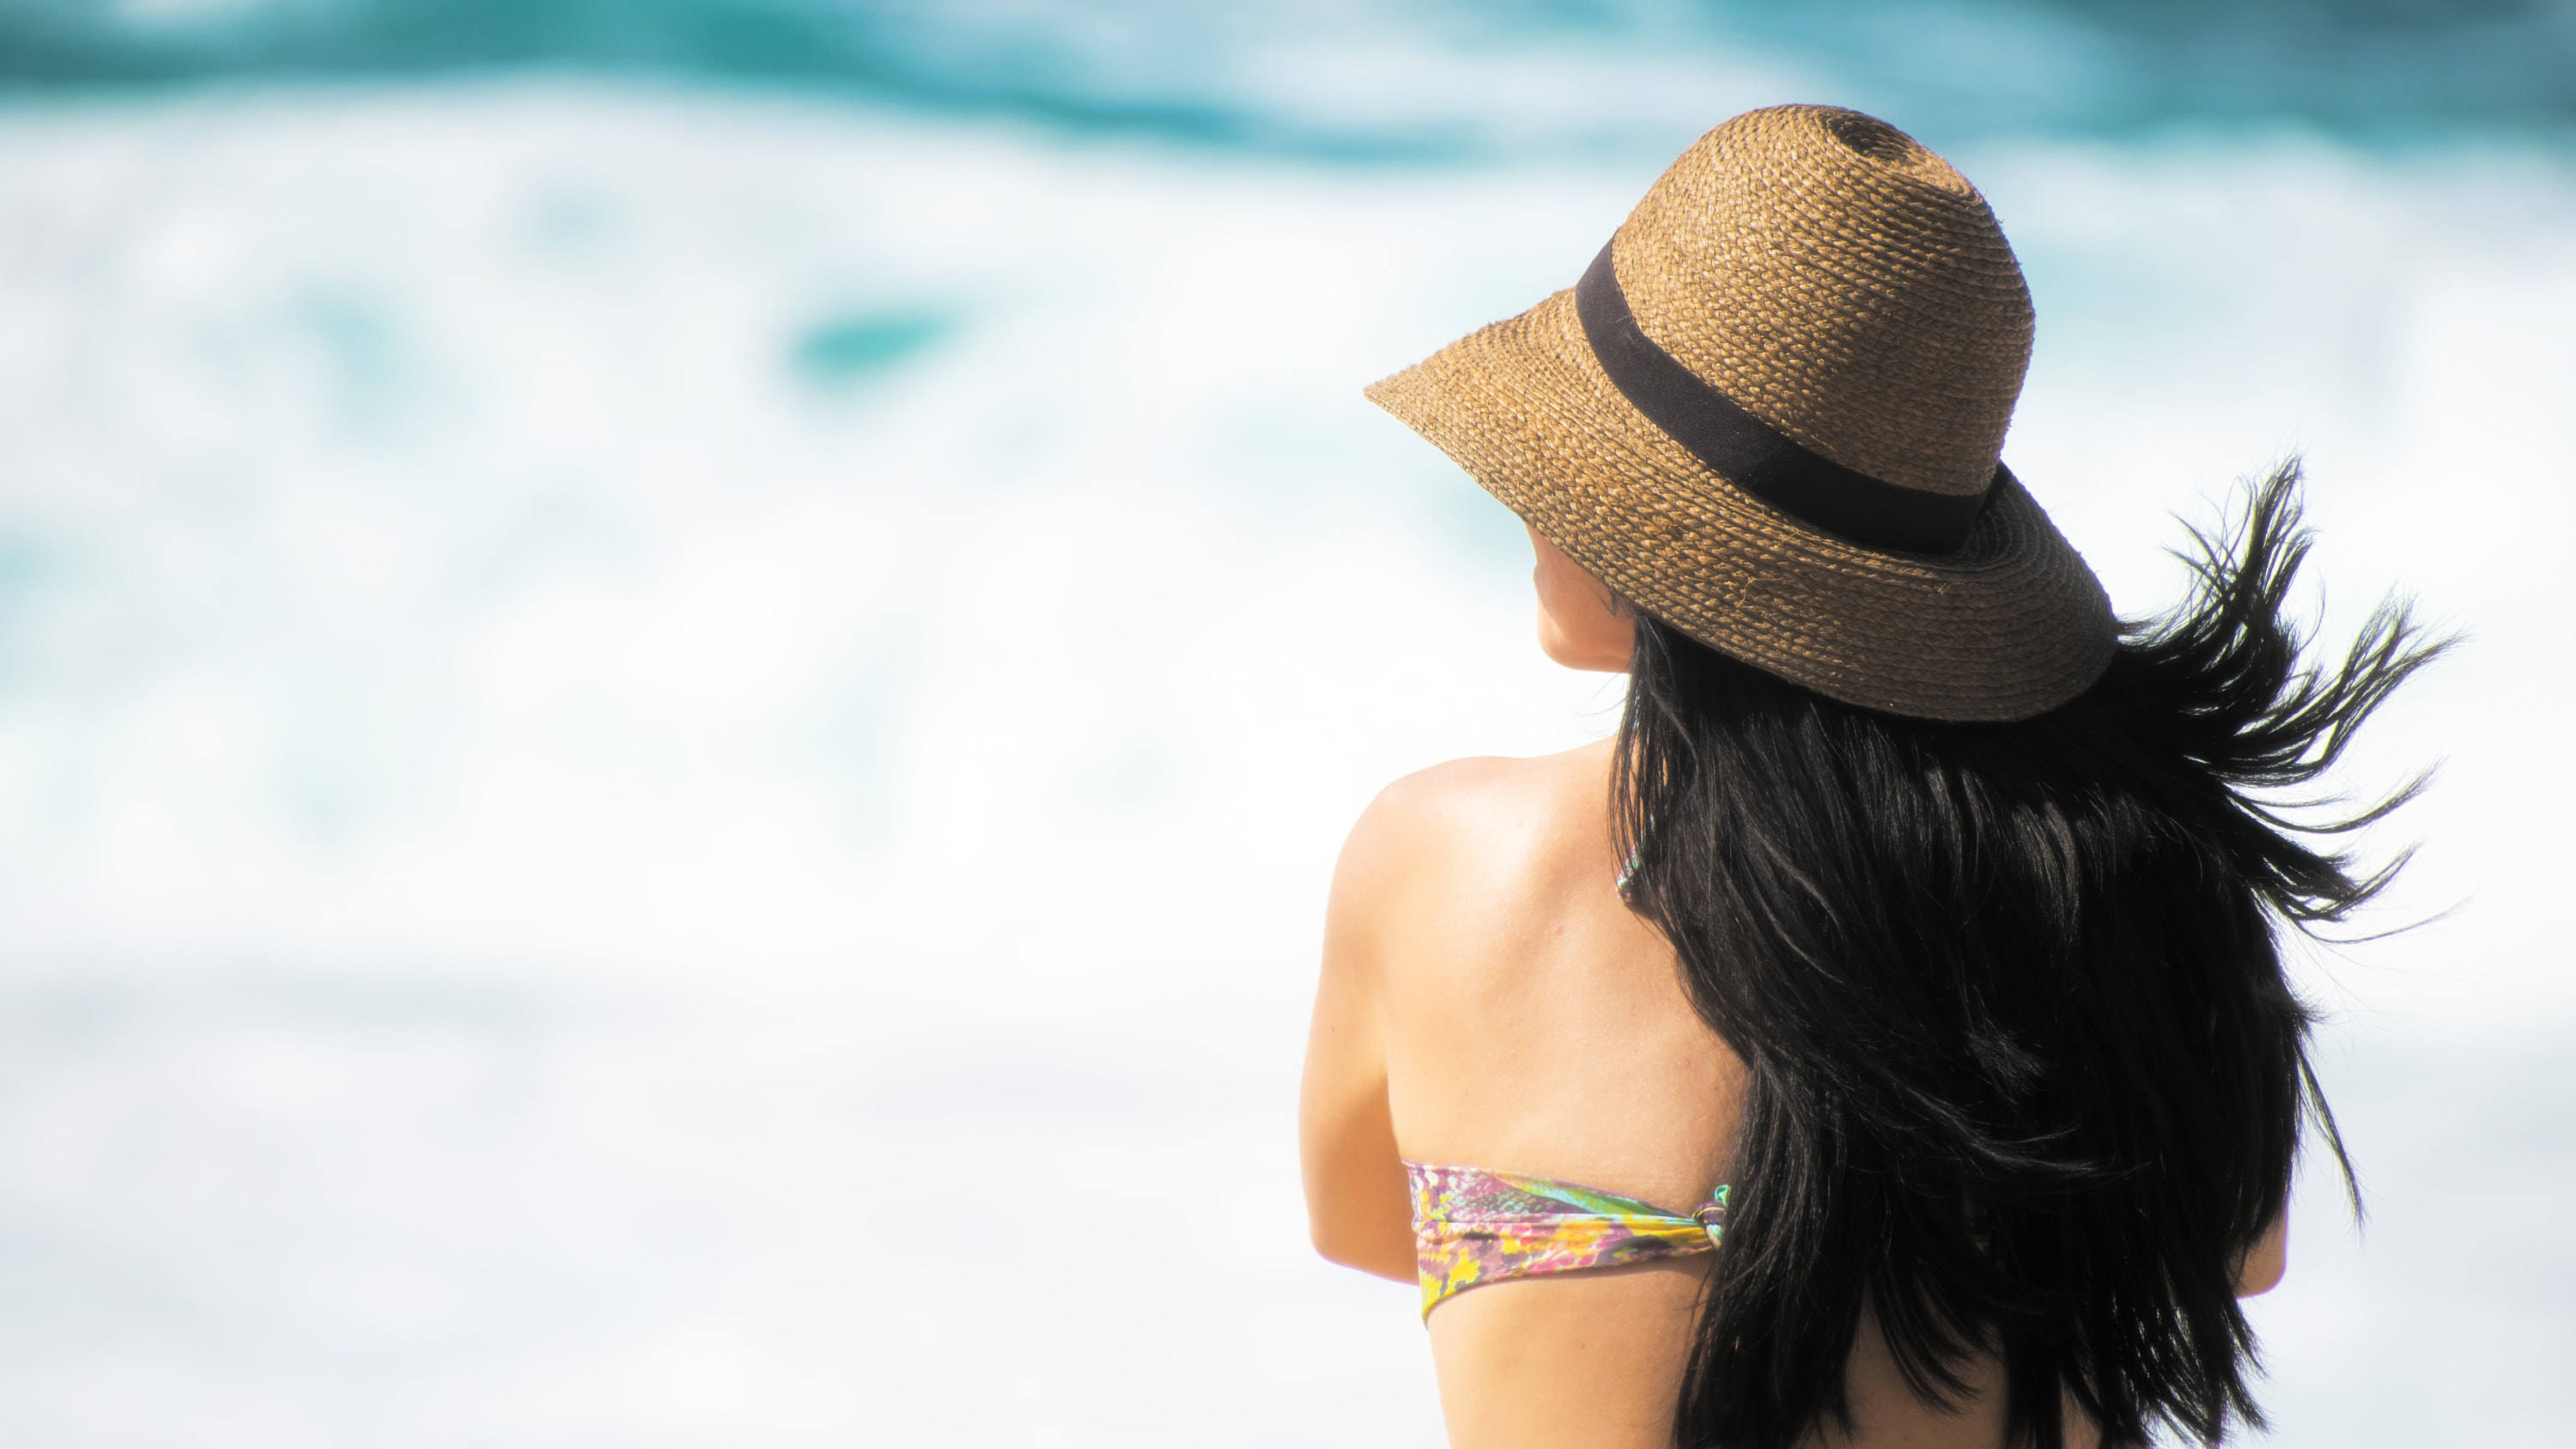 Woman on beach with long dark hair wearing hat.